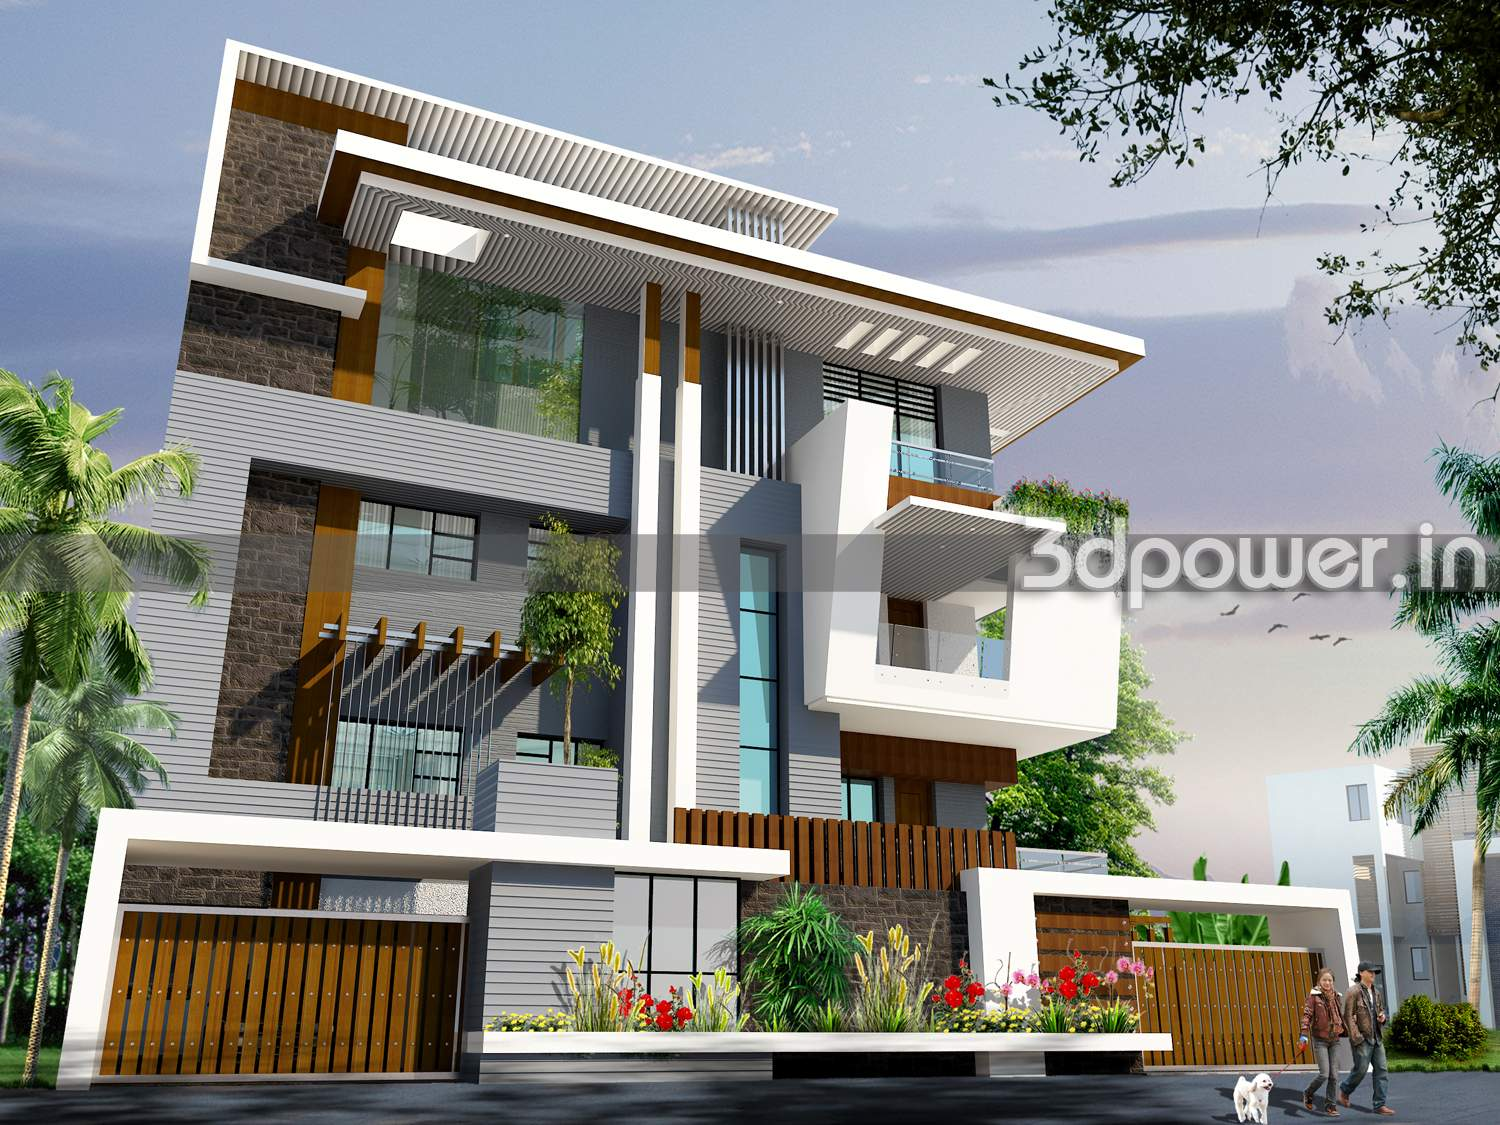 3d animation 3d rendering 3d walkthrough 3d interior cut section photomontage in india may - Home design d ...